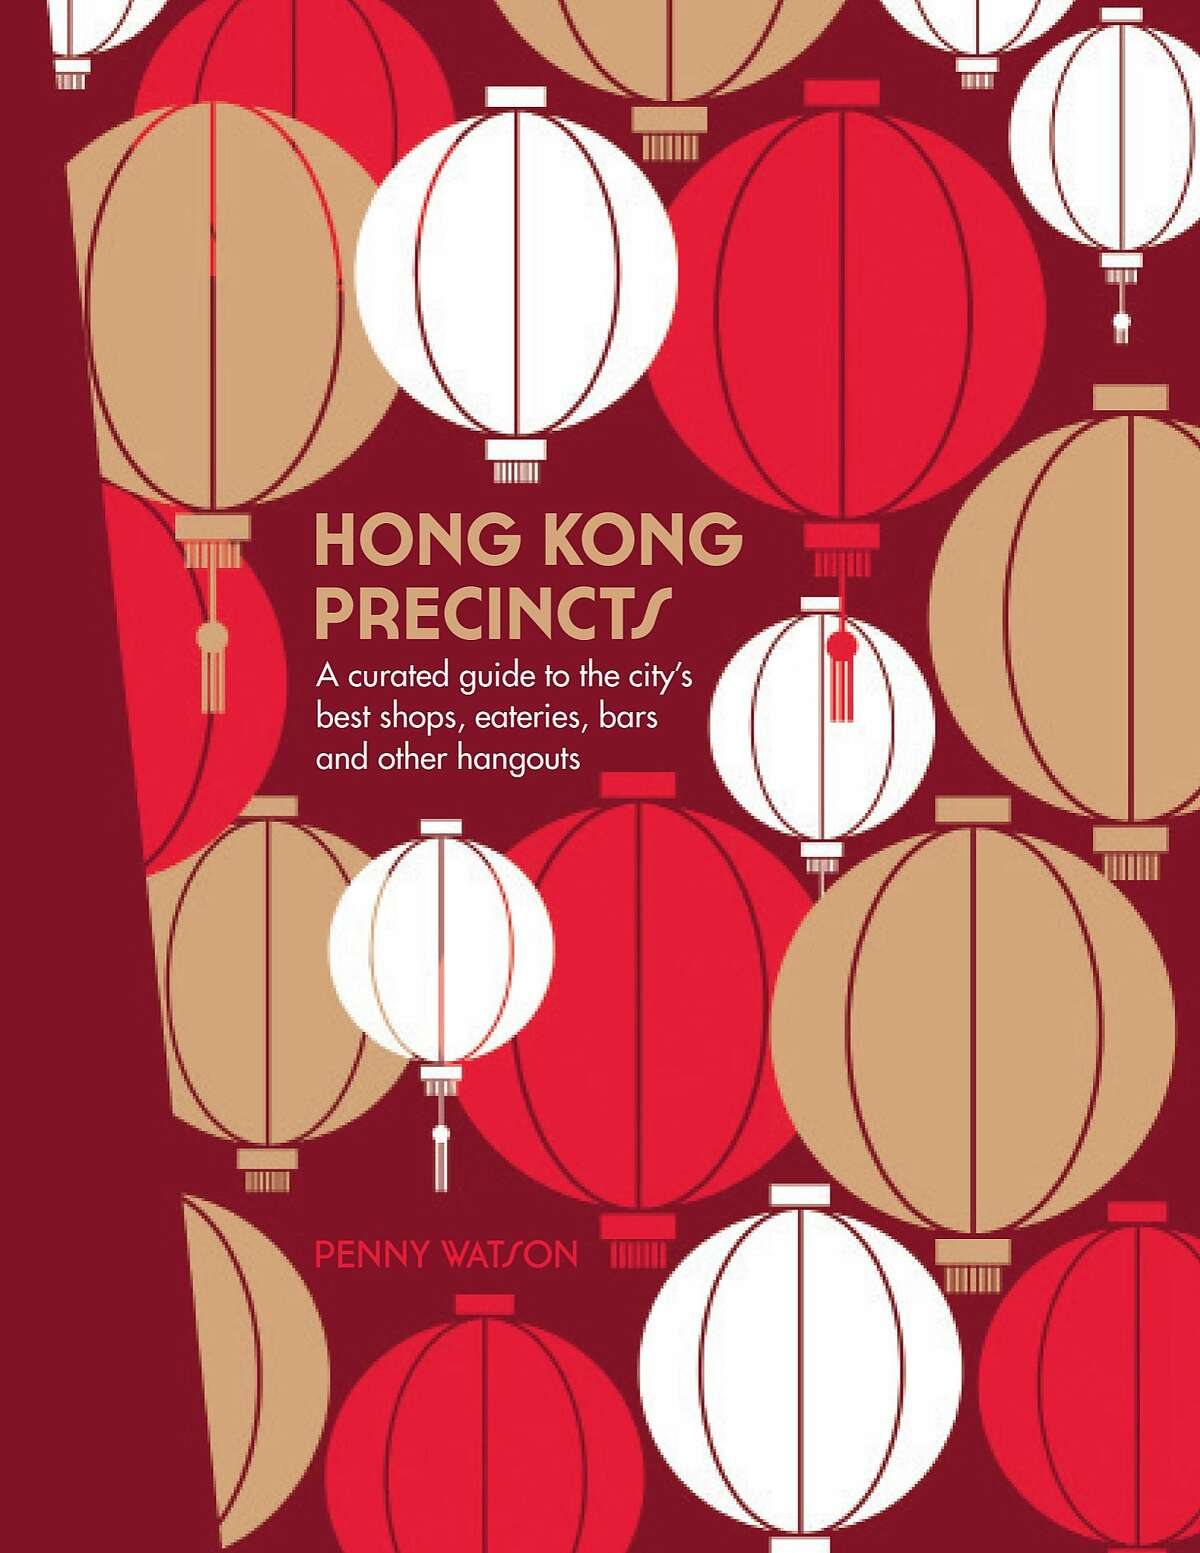 The book cover to �Hong Kong Precincts� by Penny Watson.